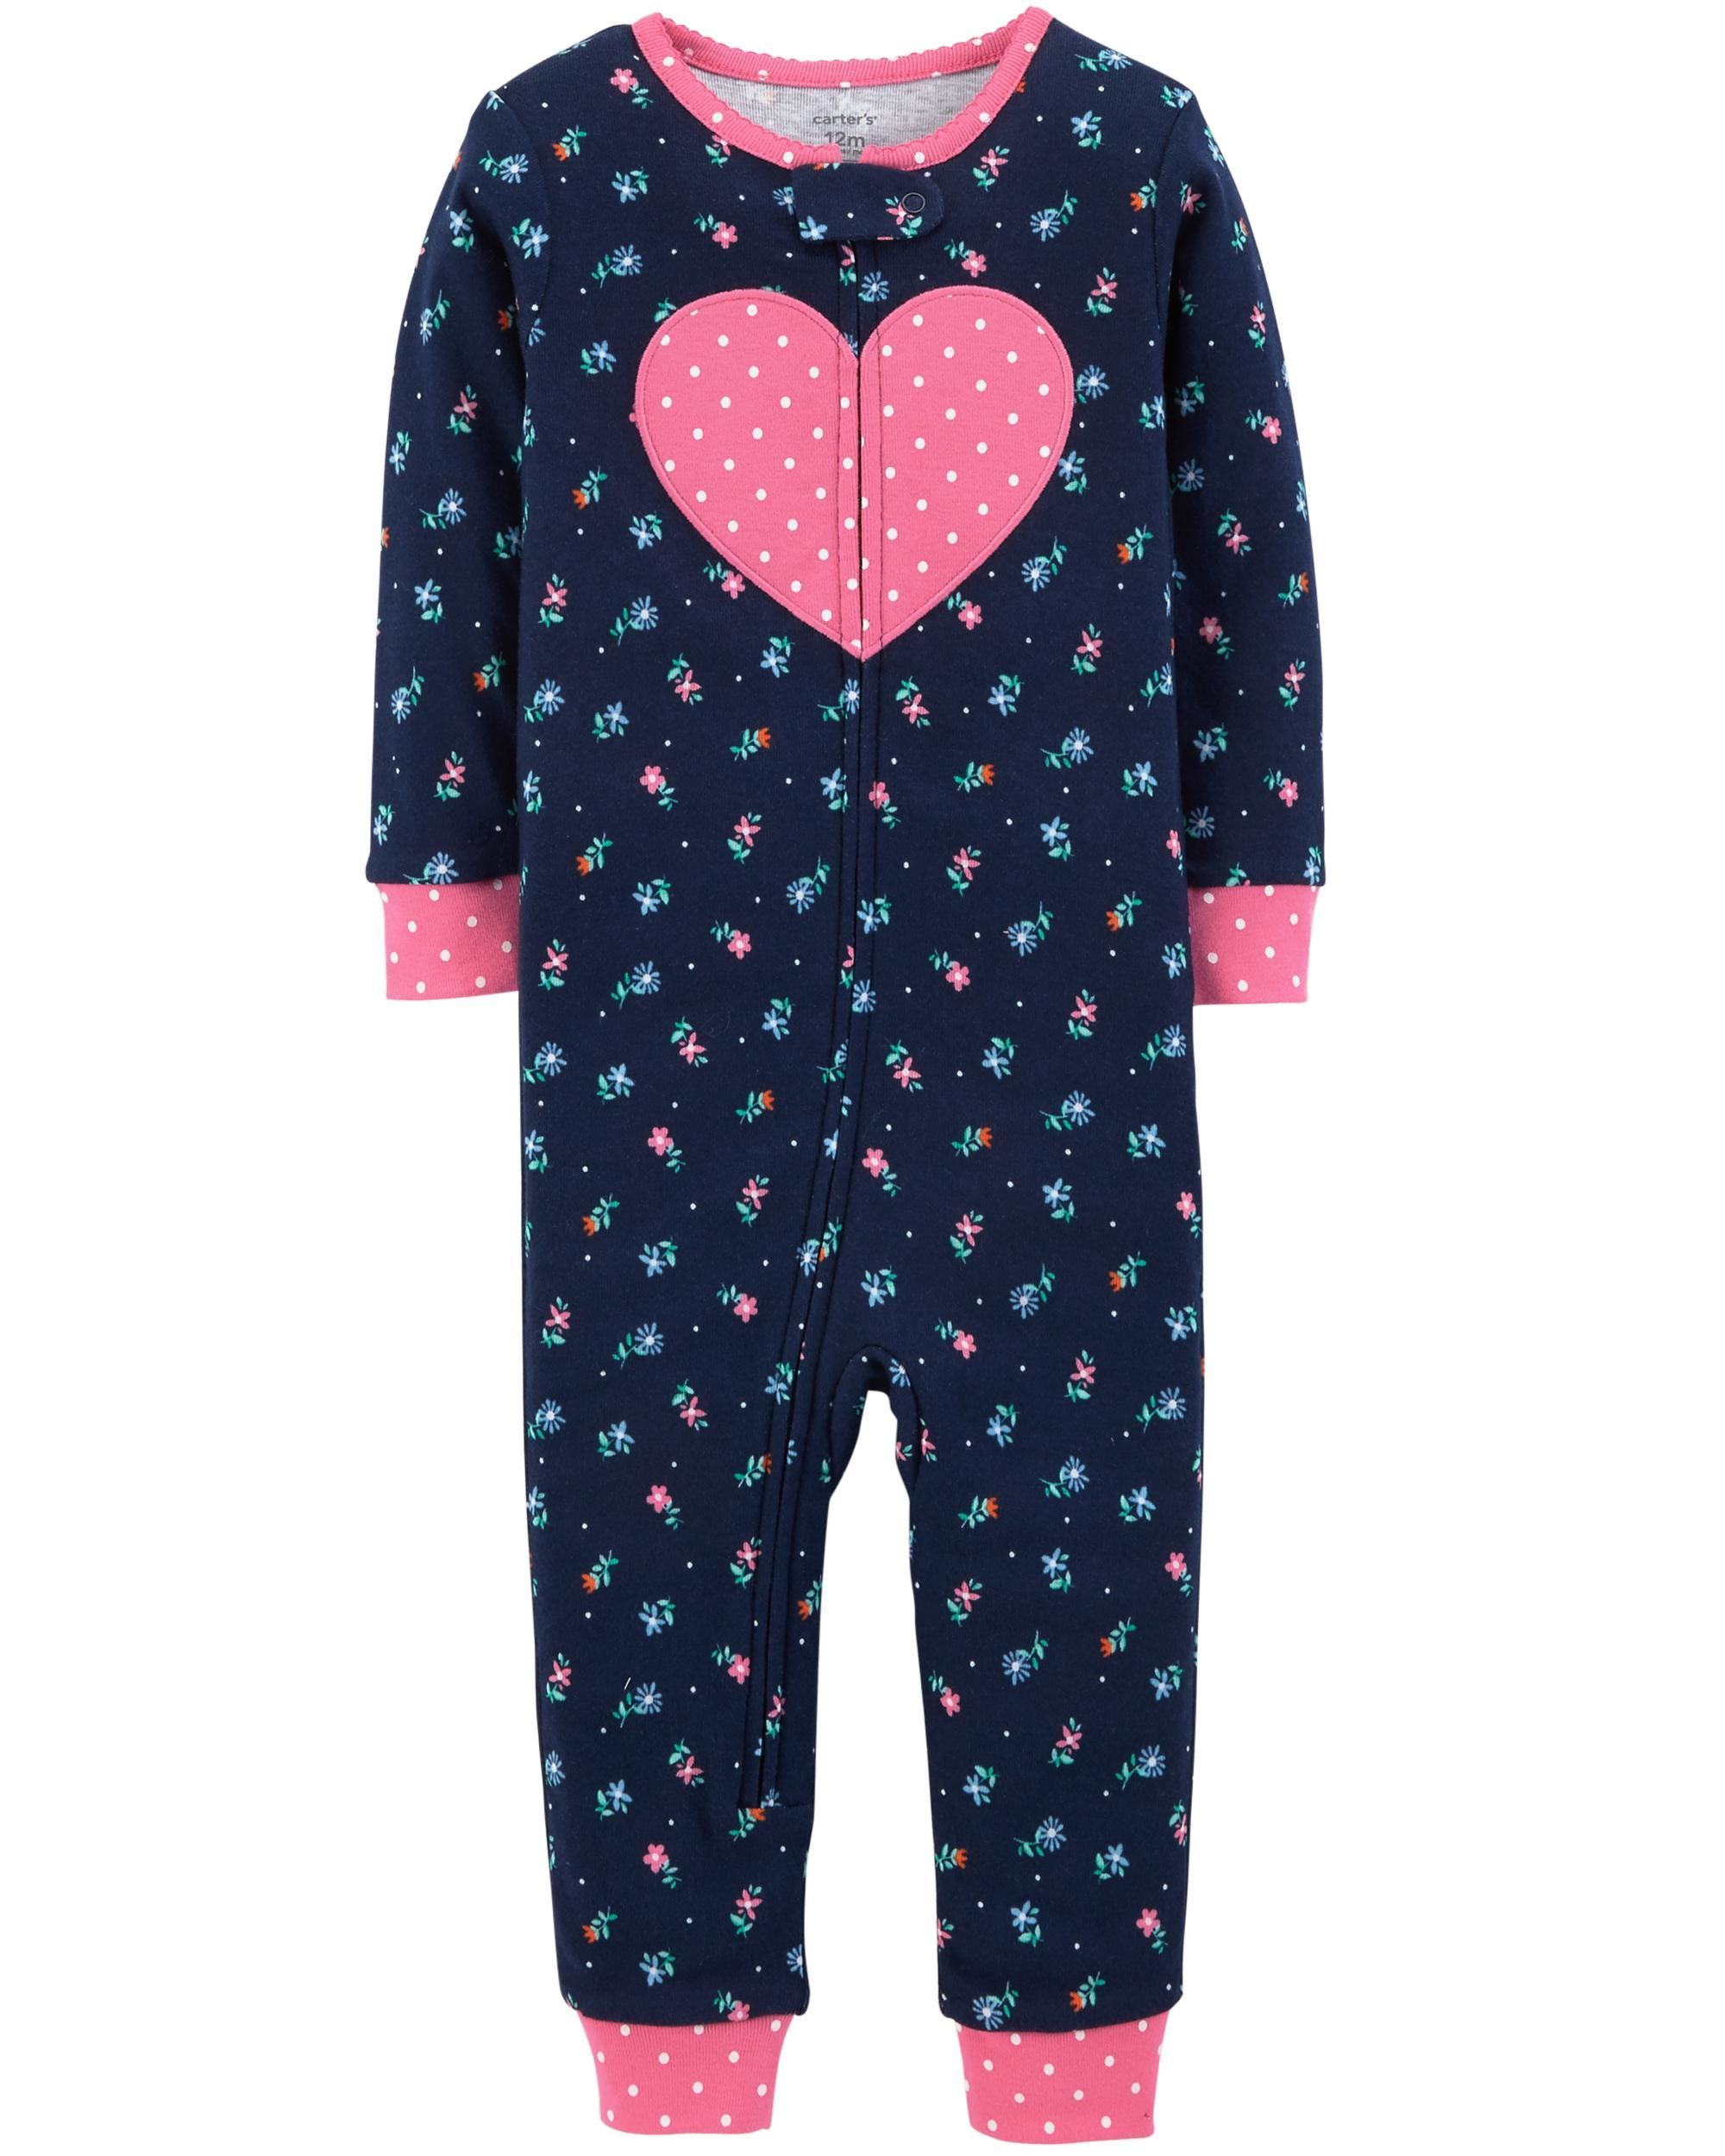 21ef5afbc4ff 1-Piece Heart Snug Fit Cotton Footless PJs